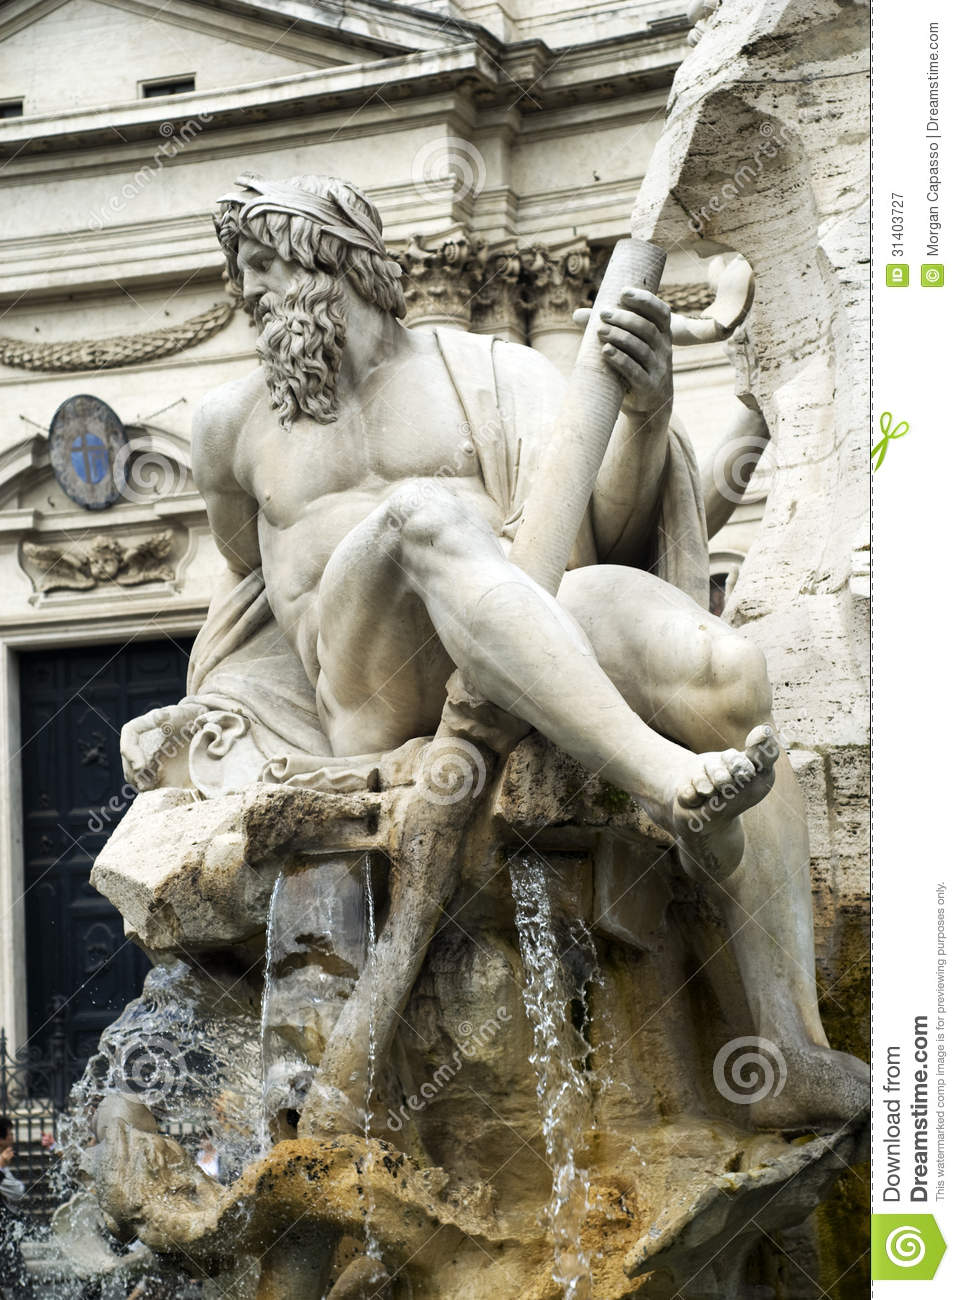 Sculpture in piazza navone rome italy royalty free stock